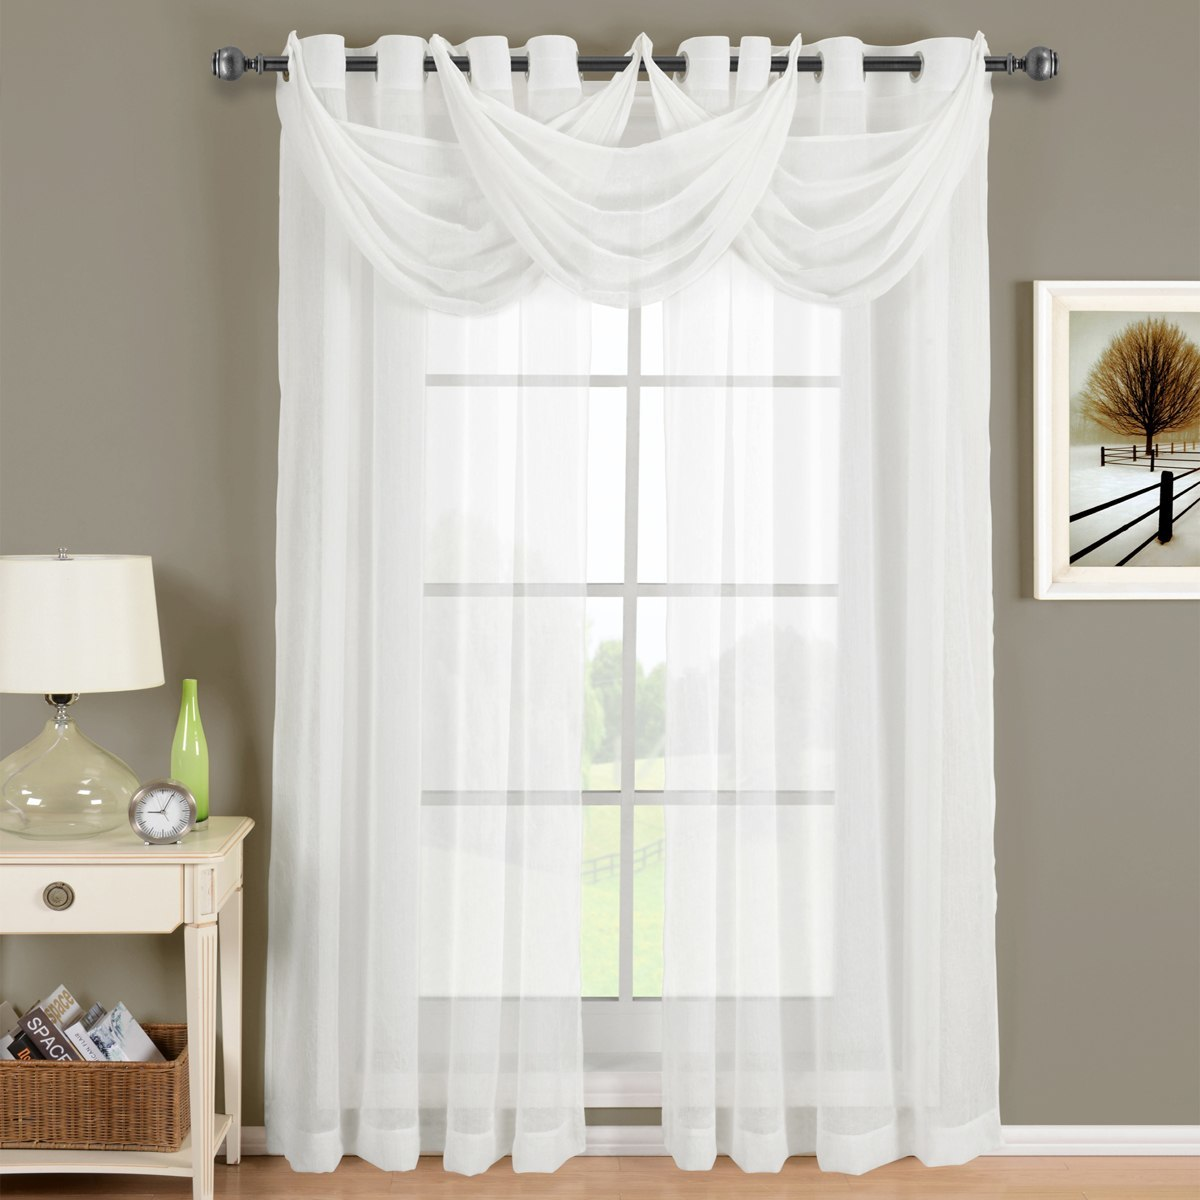 Sheer Curtain white-abri-grommet-crushed-sheer-curtain-panel-single ... BQZBIGX